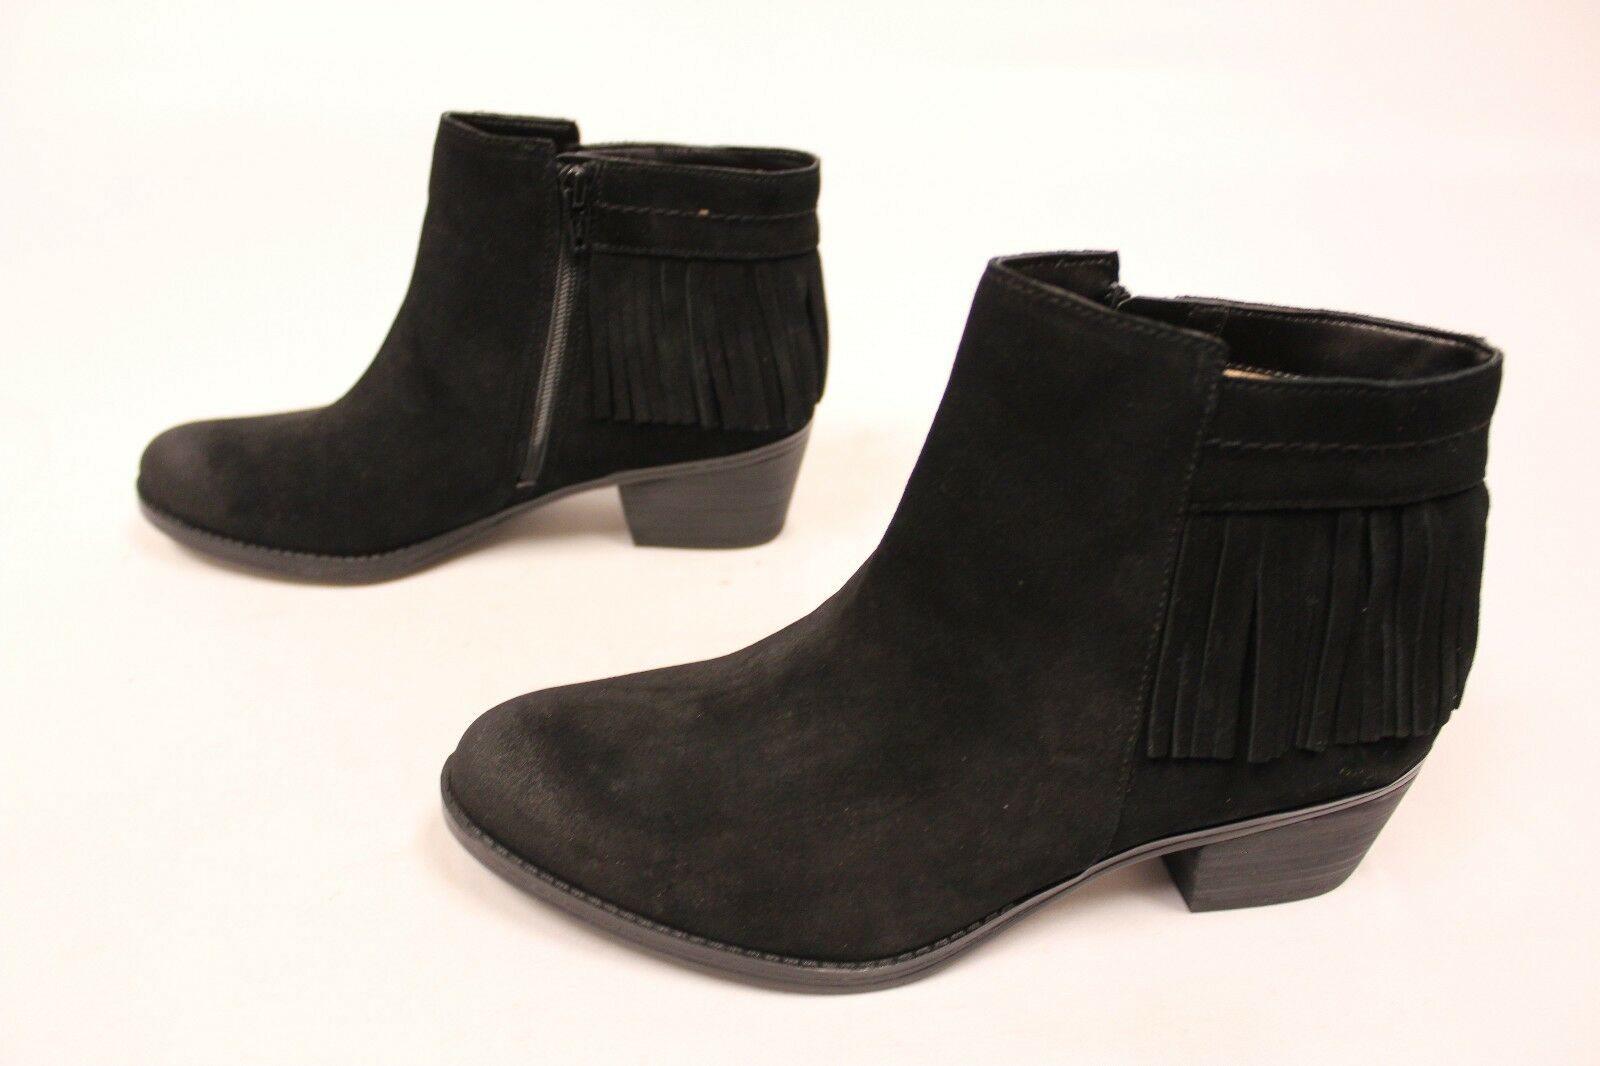 Naturalizer Zeline Fringed Bootie Ankle Boots Black Suede MM1 Women's Size 9W